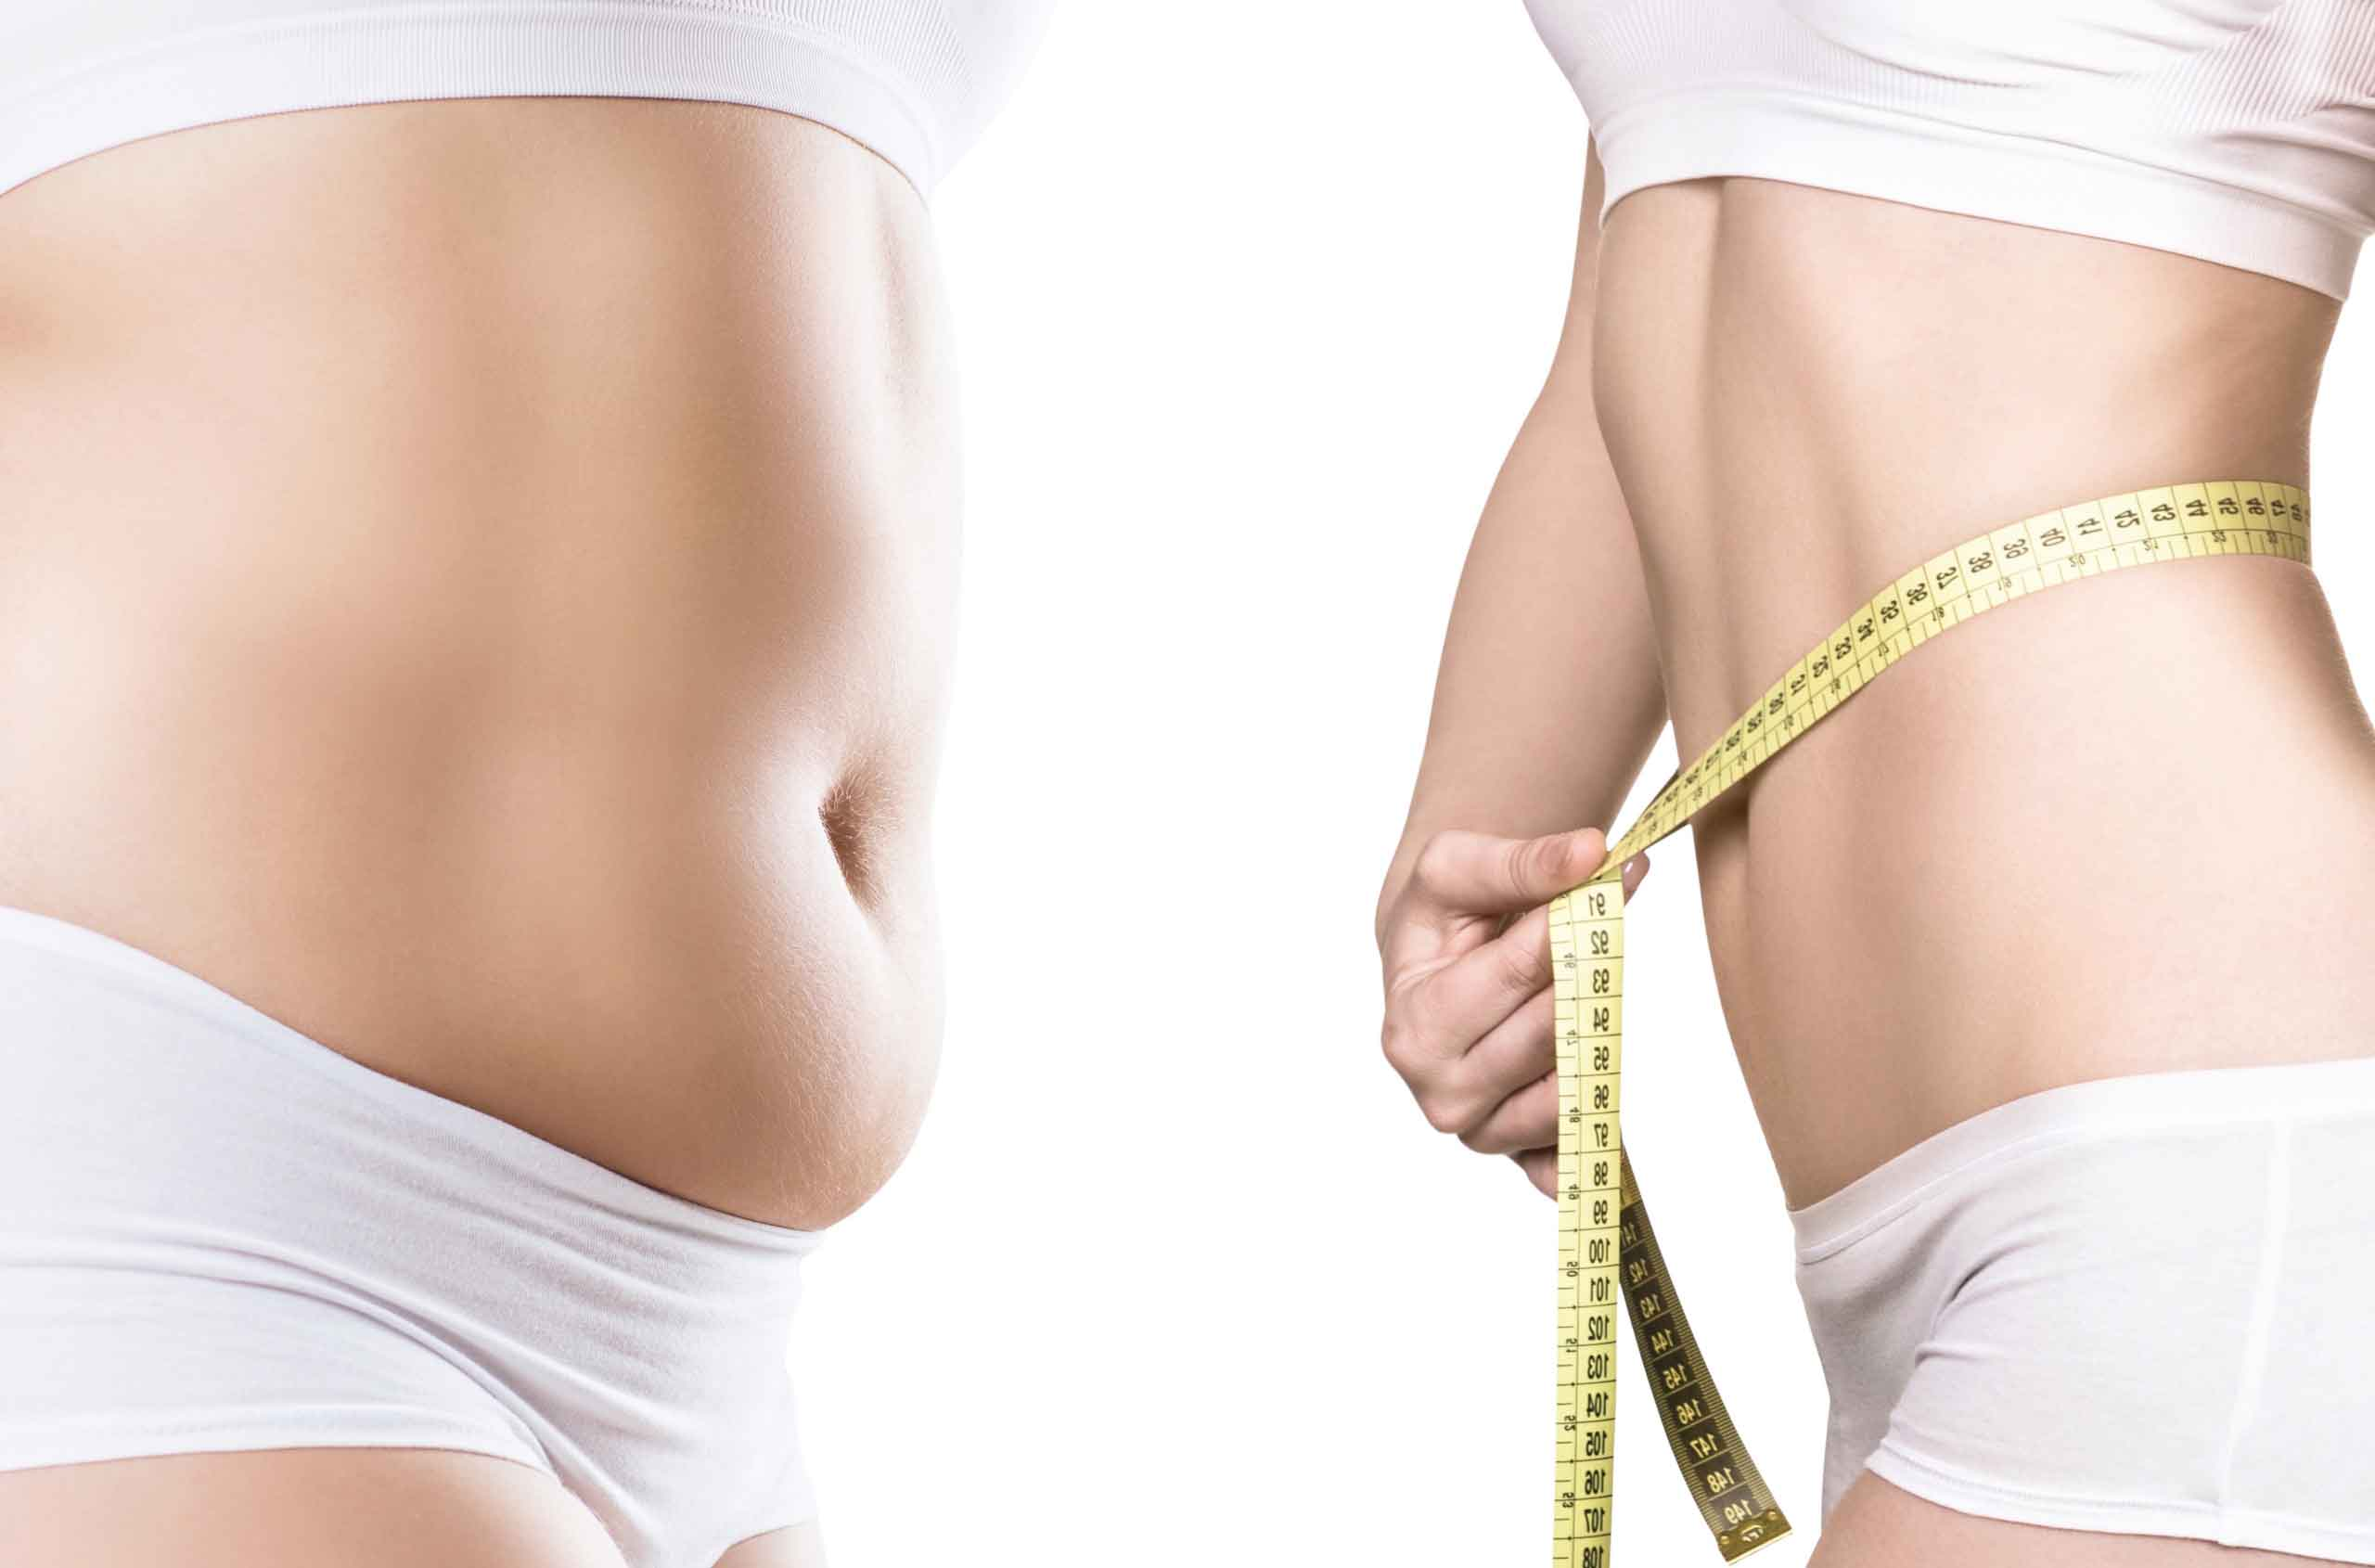 Liposuction without surgery 13